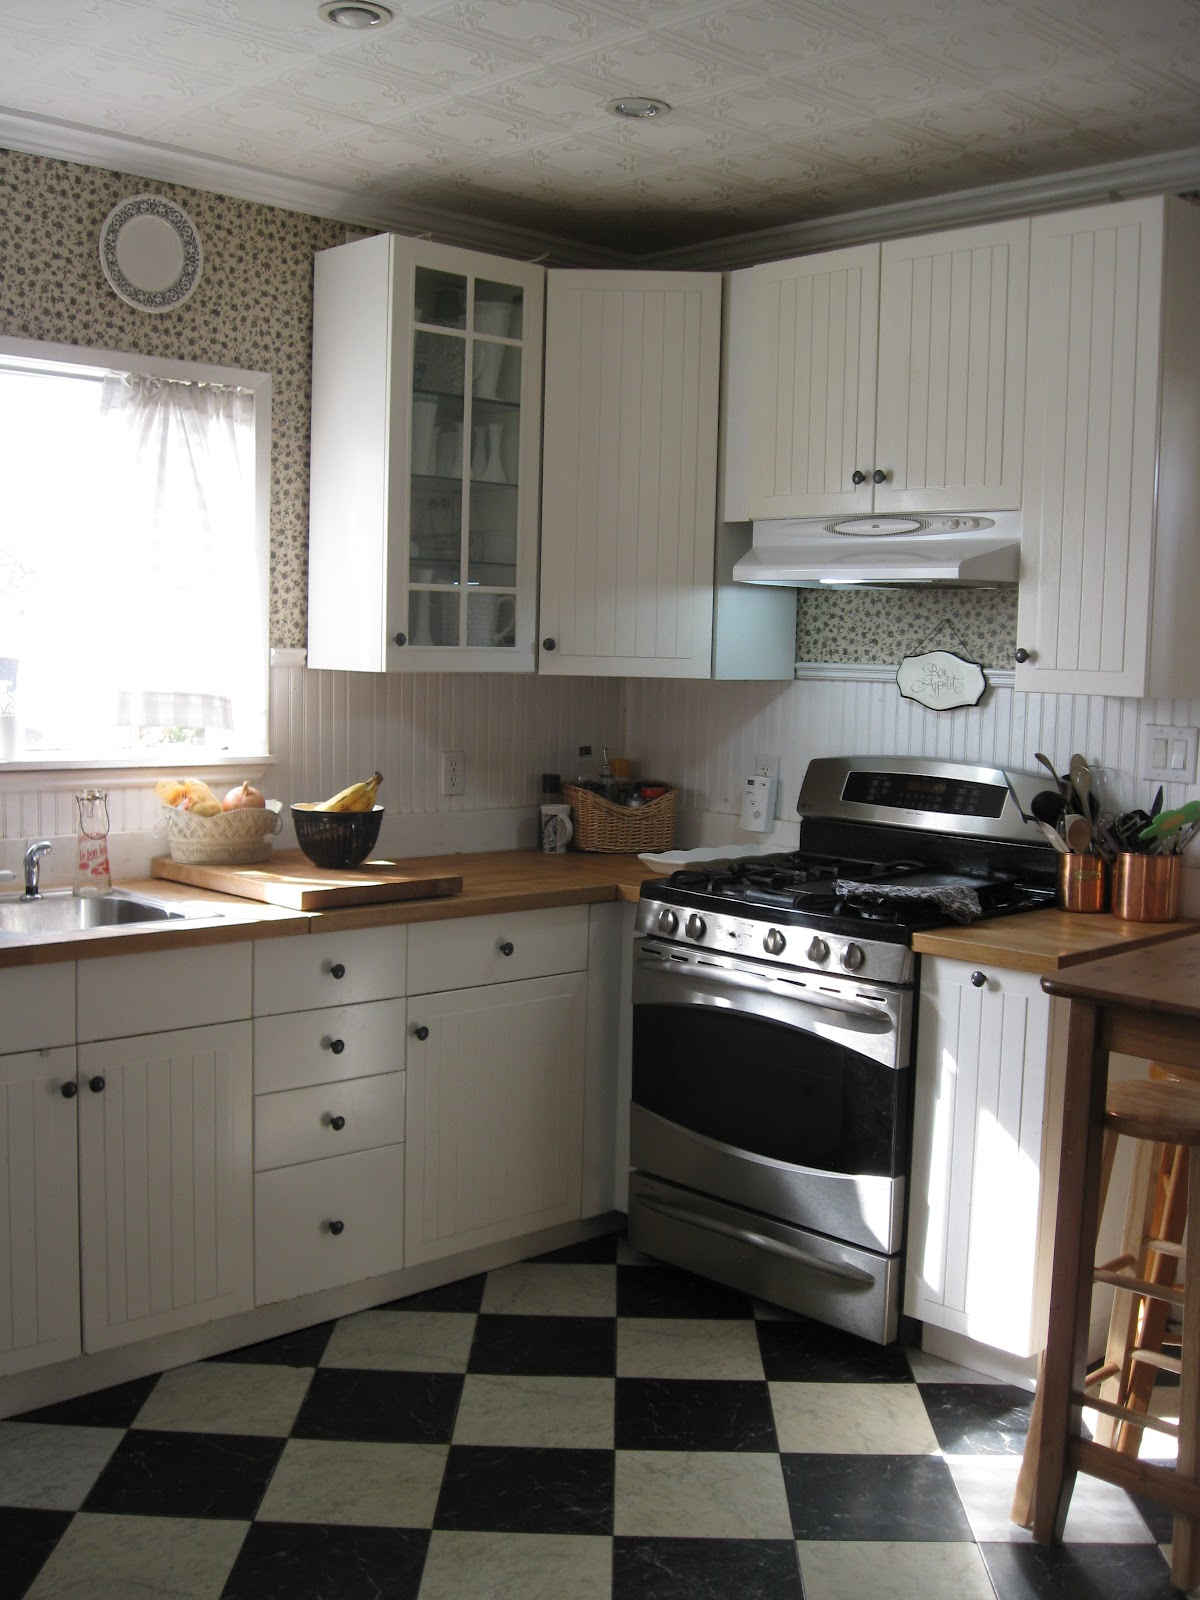 My Dream Kitchen Fashionandstylepolice: Of Wool And Loveliness: My Dream Kitchen- Part 3 The REVEAL